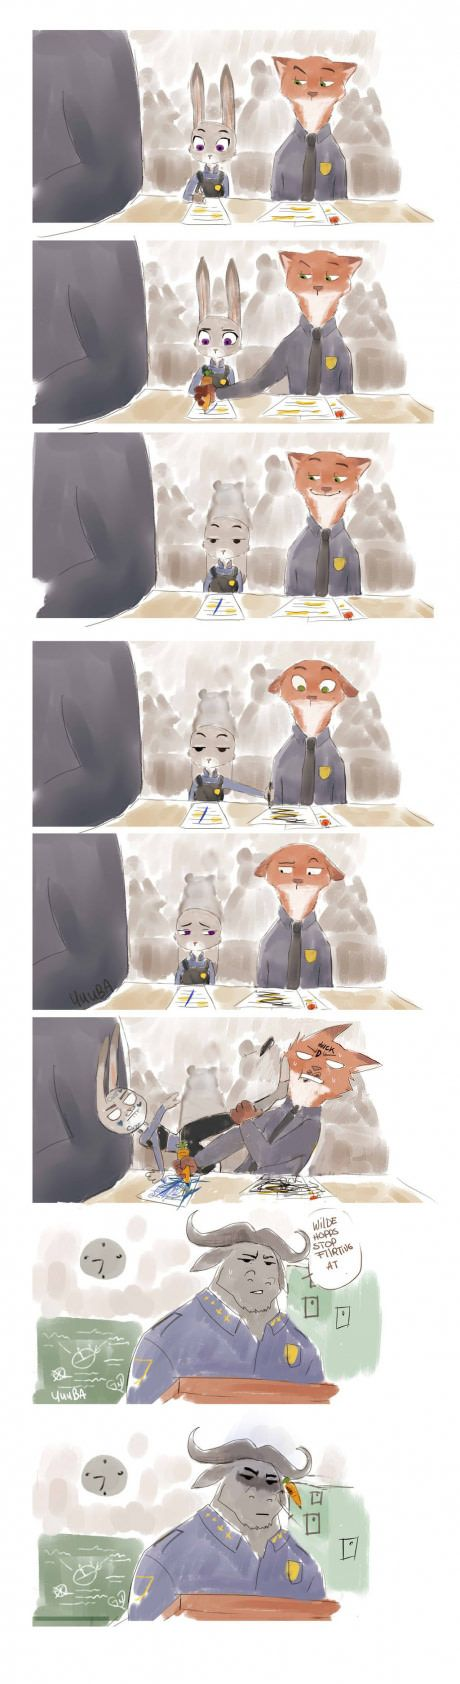 Another nice Zootopia comic by an unknown artist